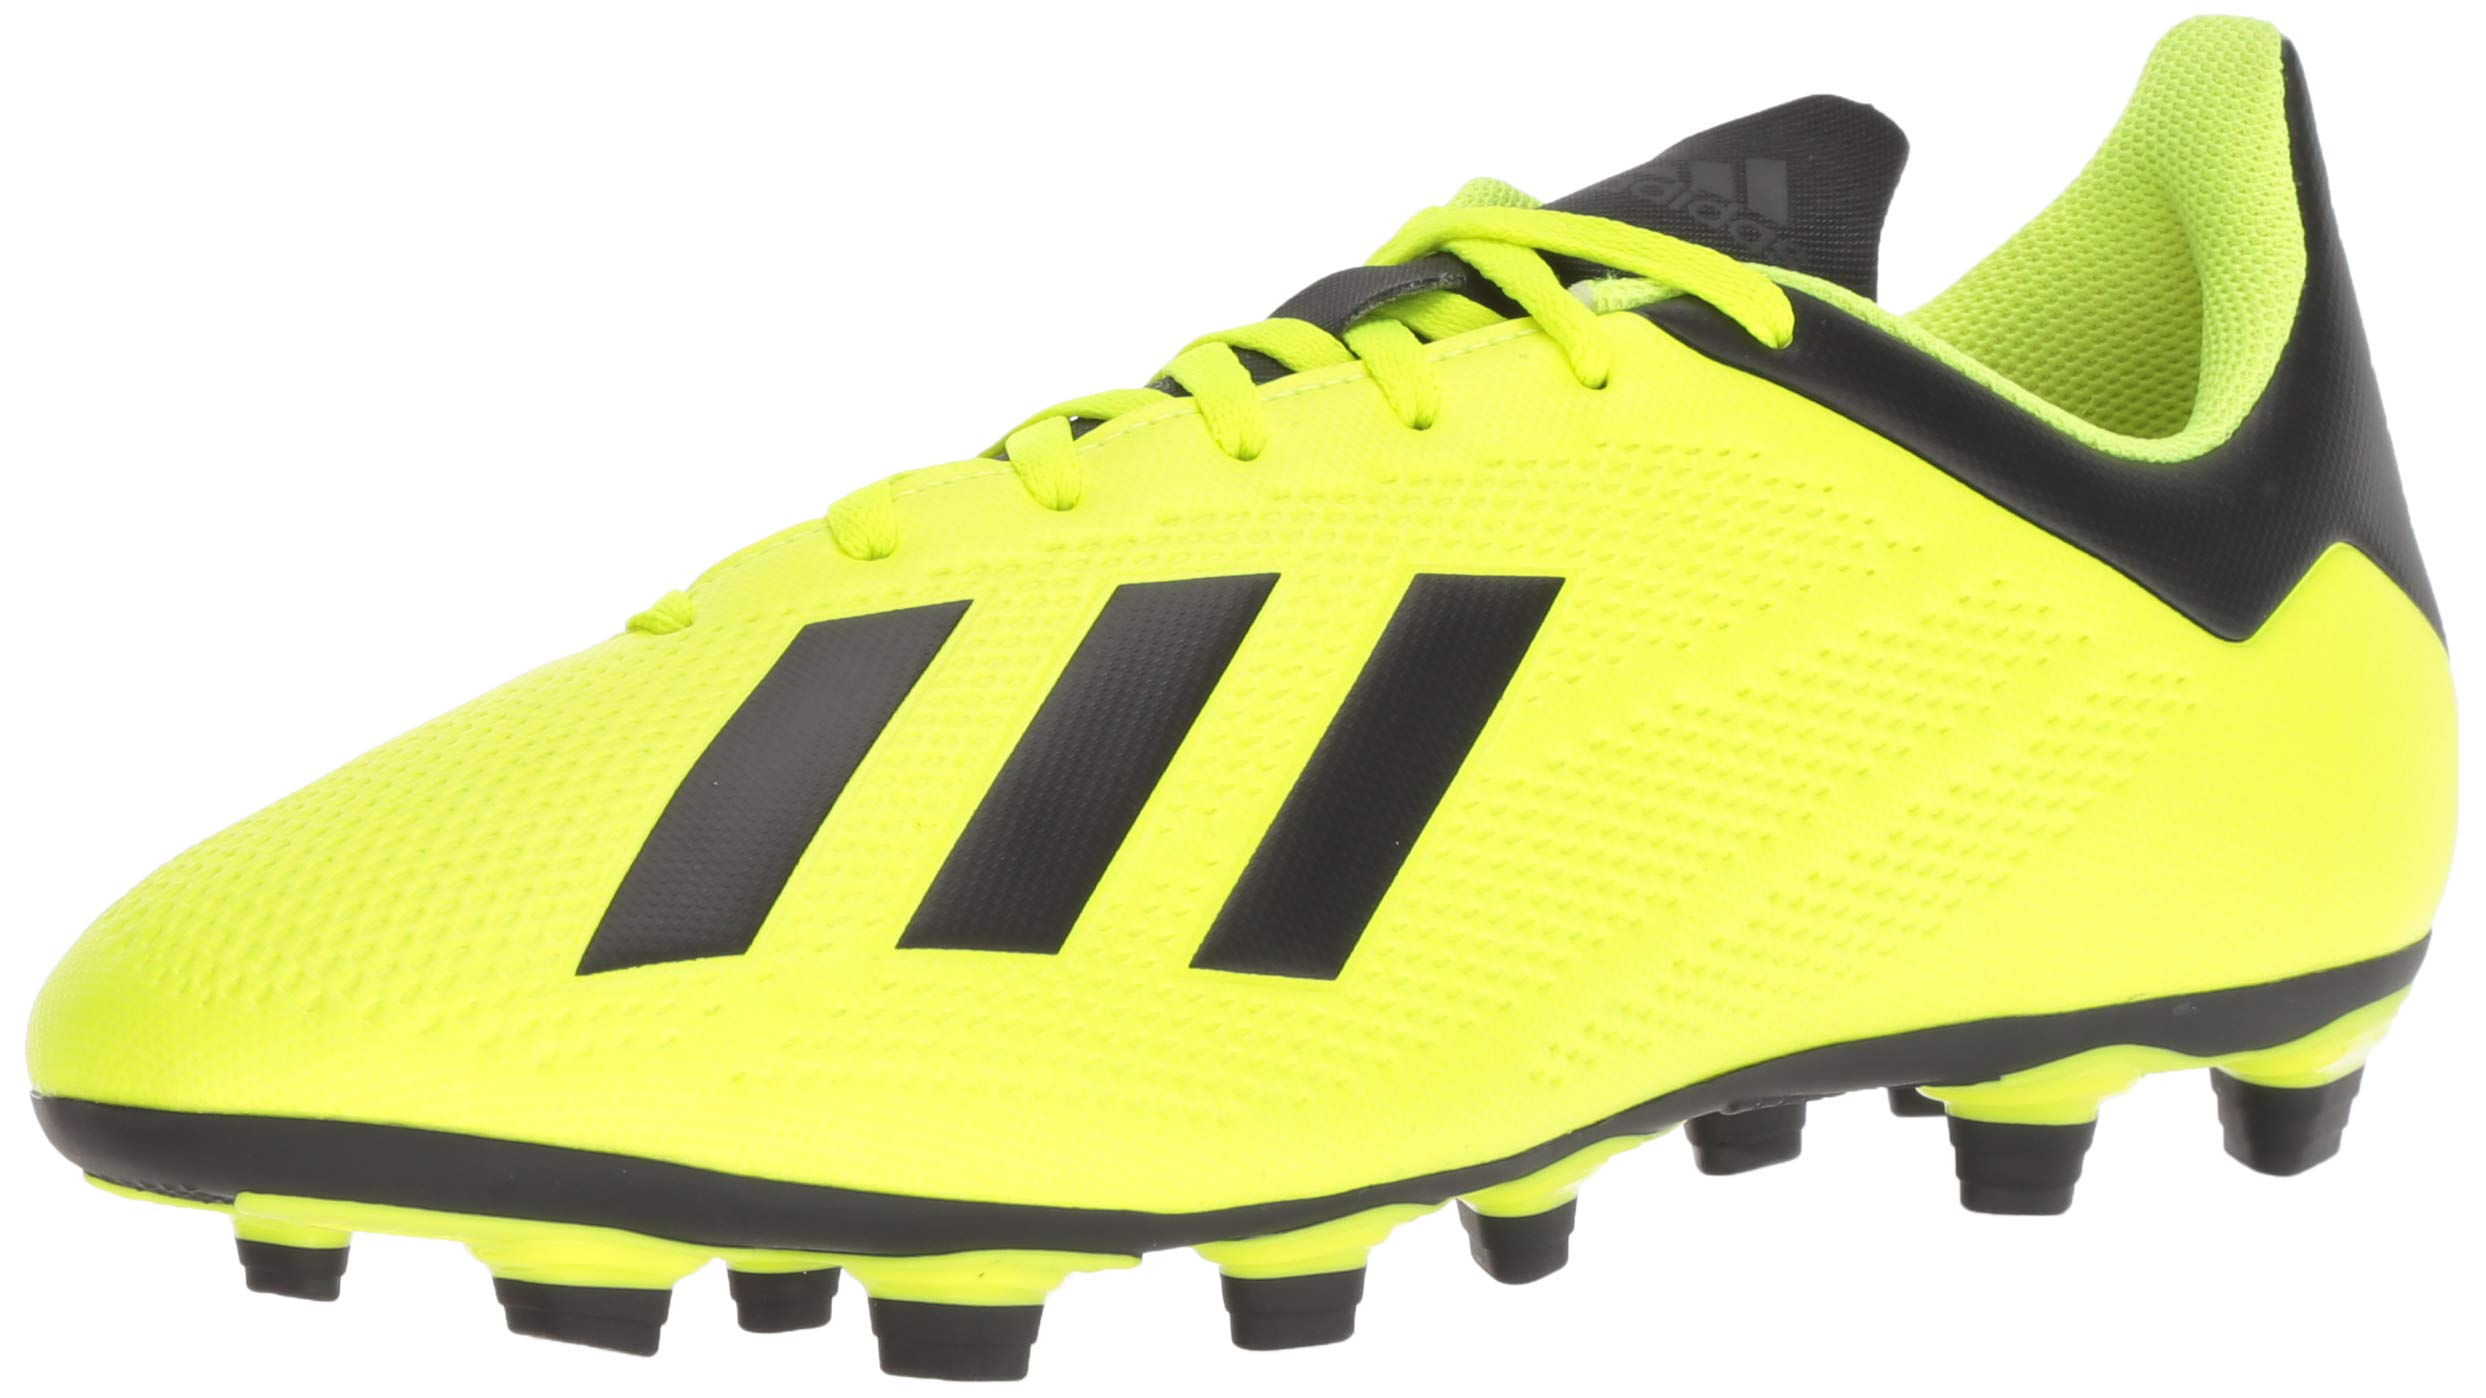 adidas Men's X 18.4 Firm Ground Soccer Shoe, Solar Yellow/Black/White, 7.5 M US